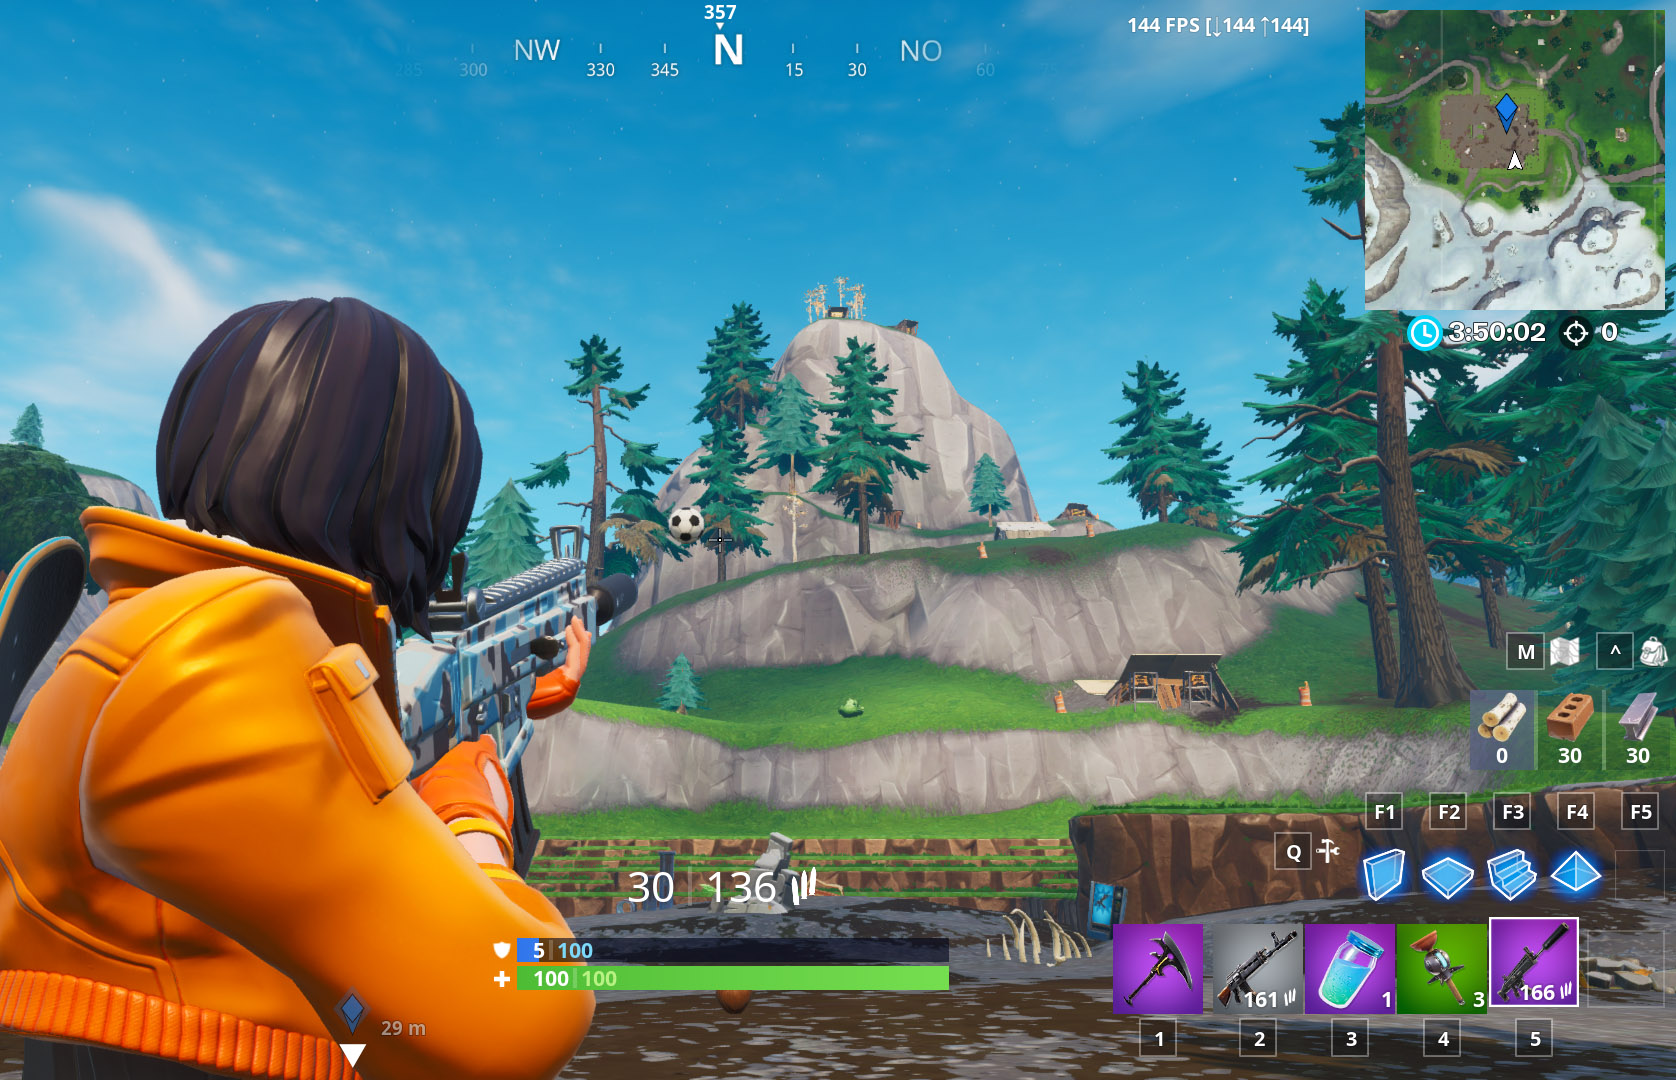 https://images.mein-mmo.de/magazin/medien/2019/08/Fortnite-Ball-schwebt.jpg